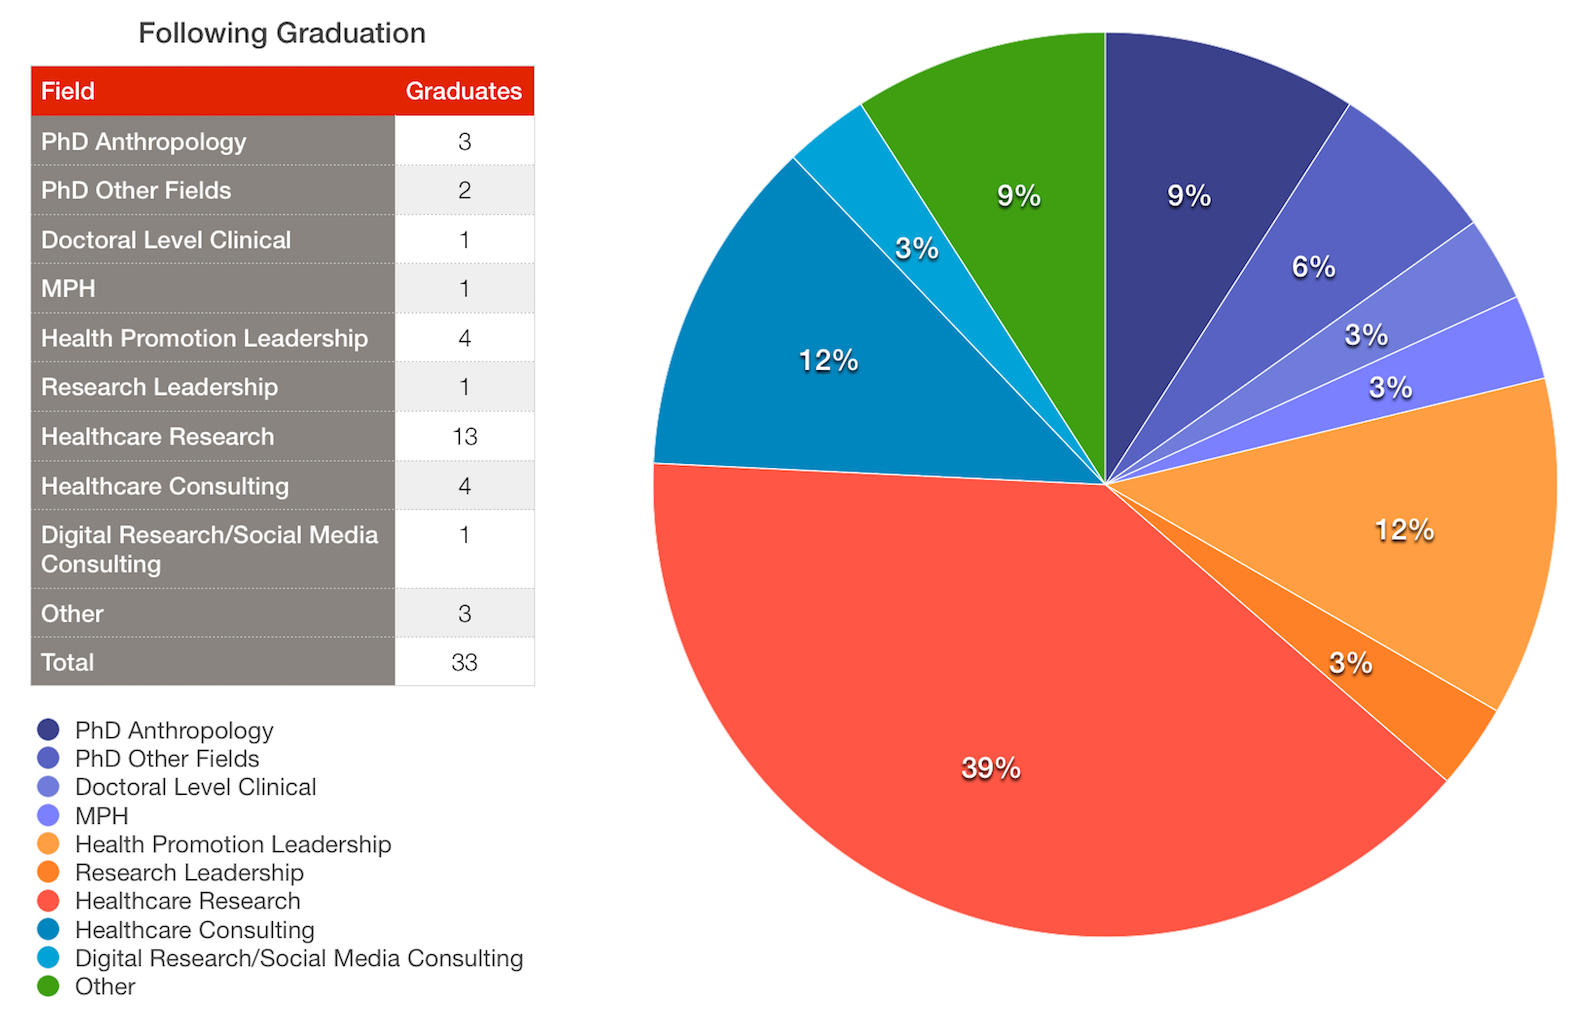 MACCP following graduation pie chart